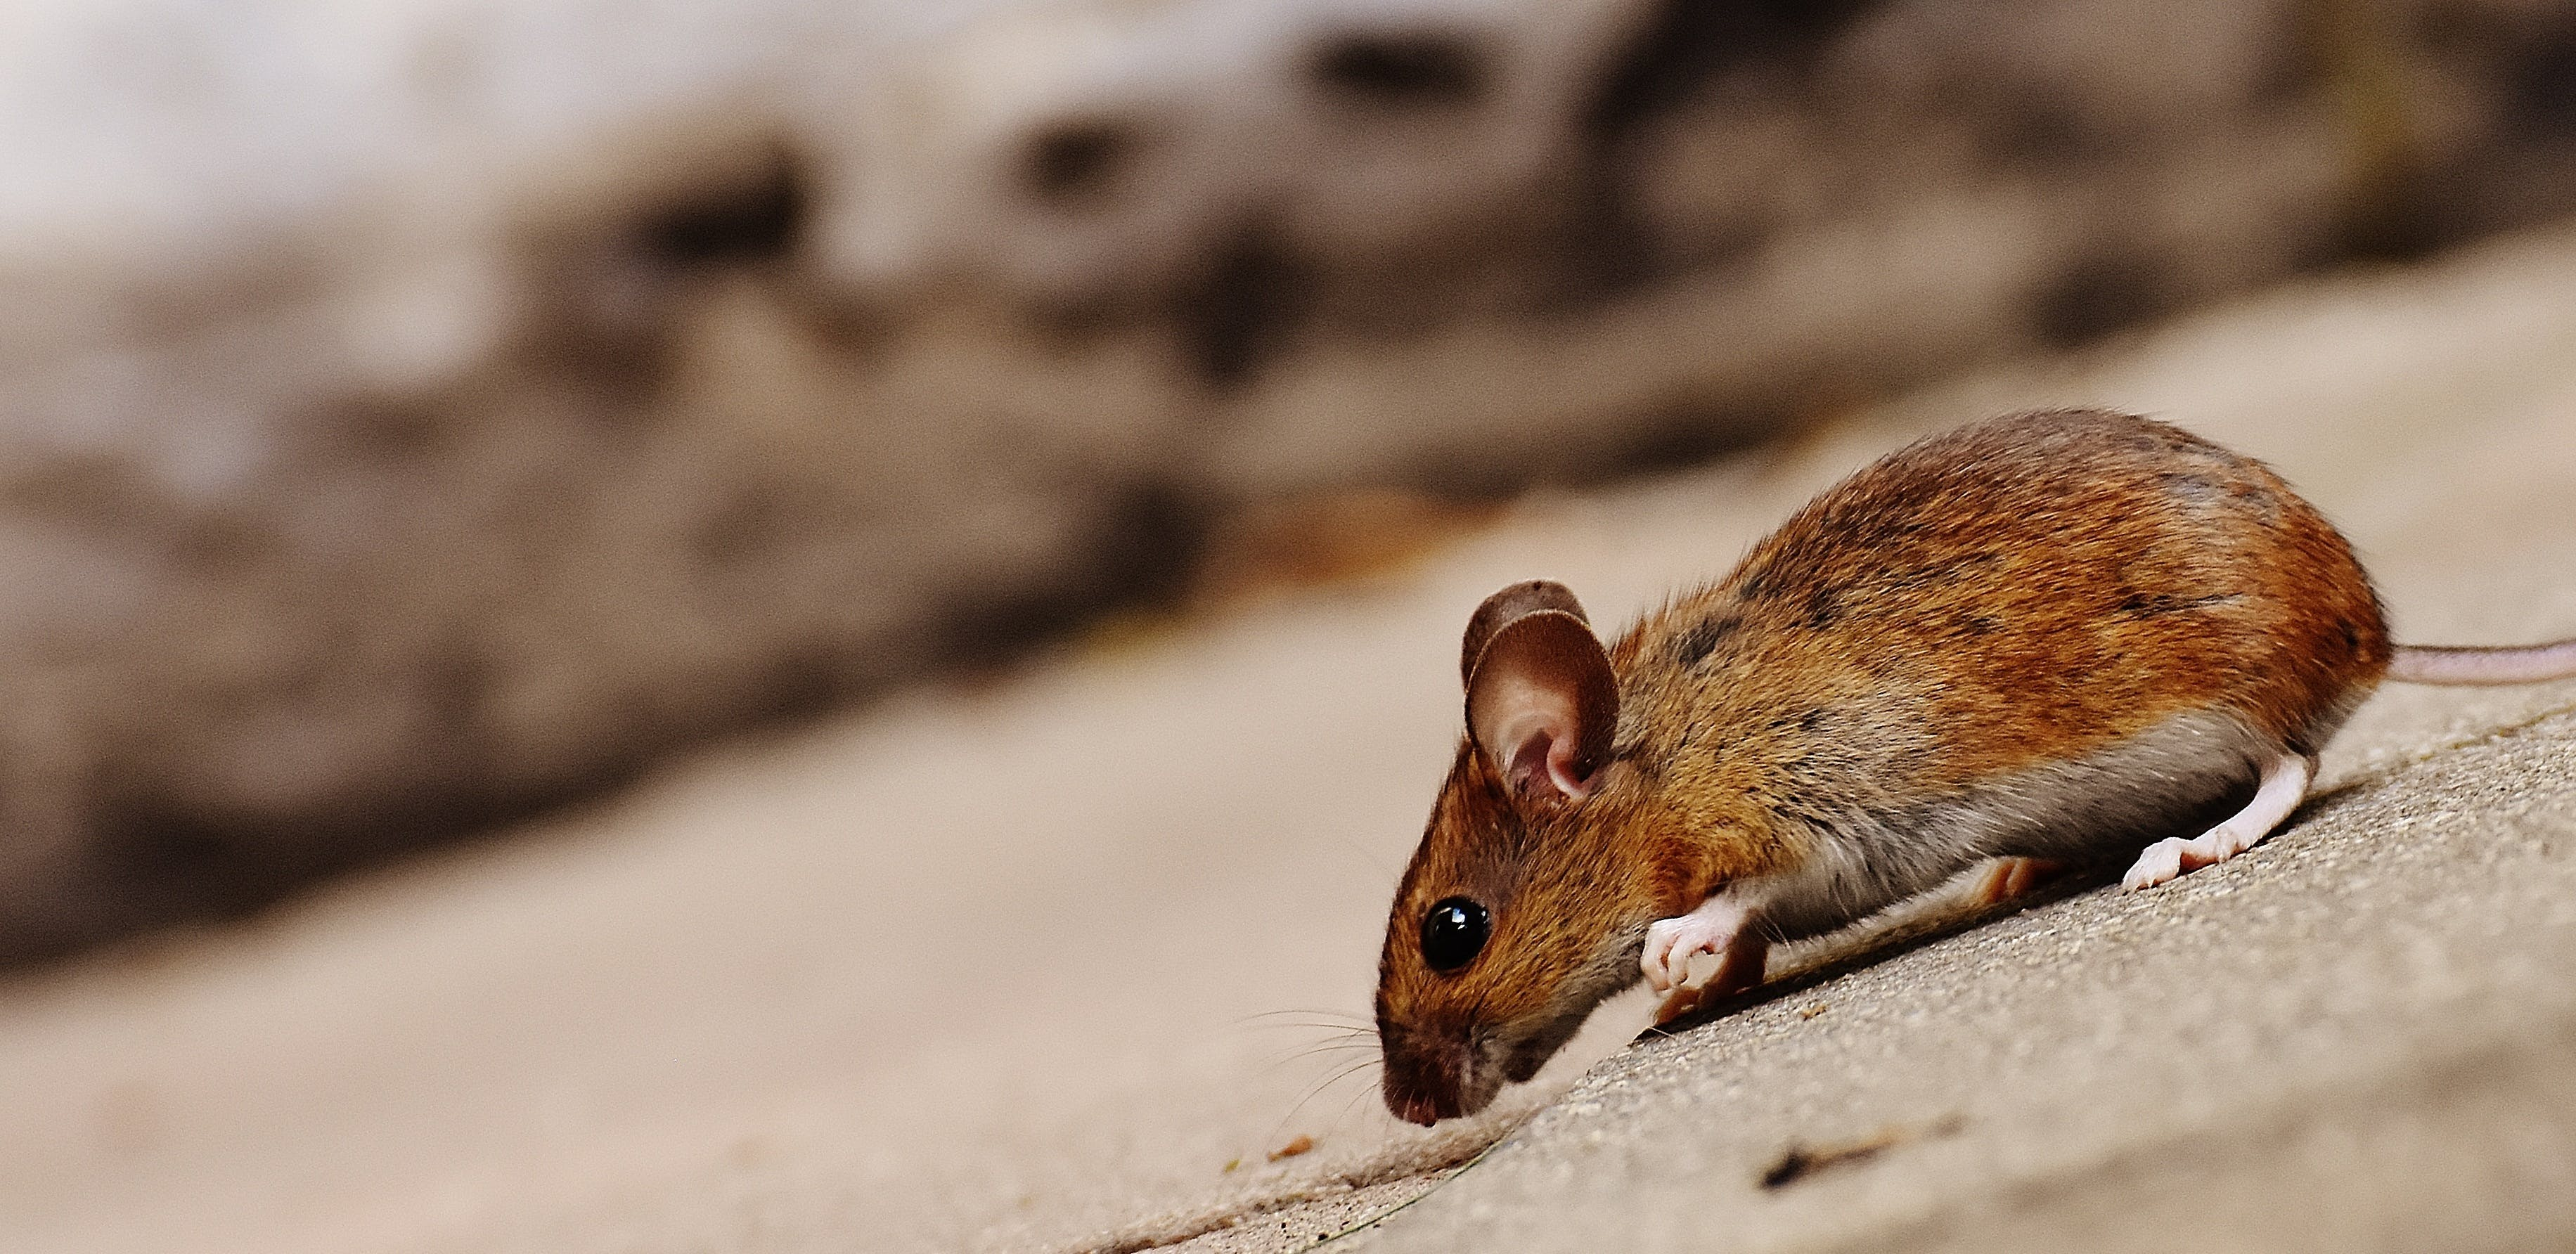 Brown Mouse on Paved Road